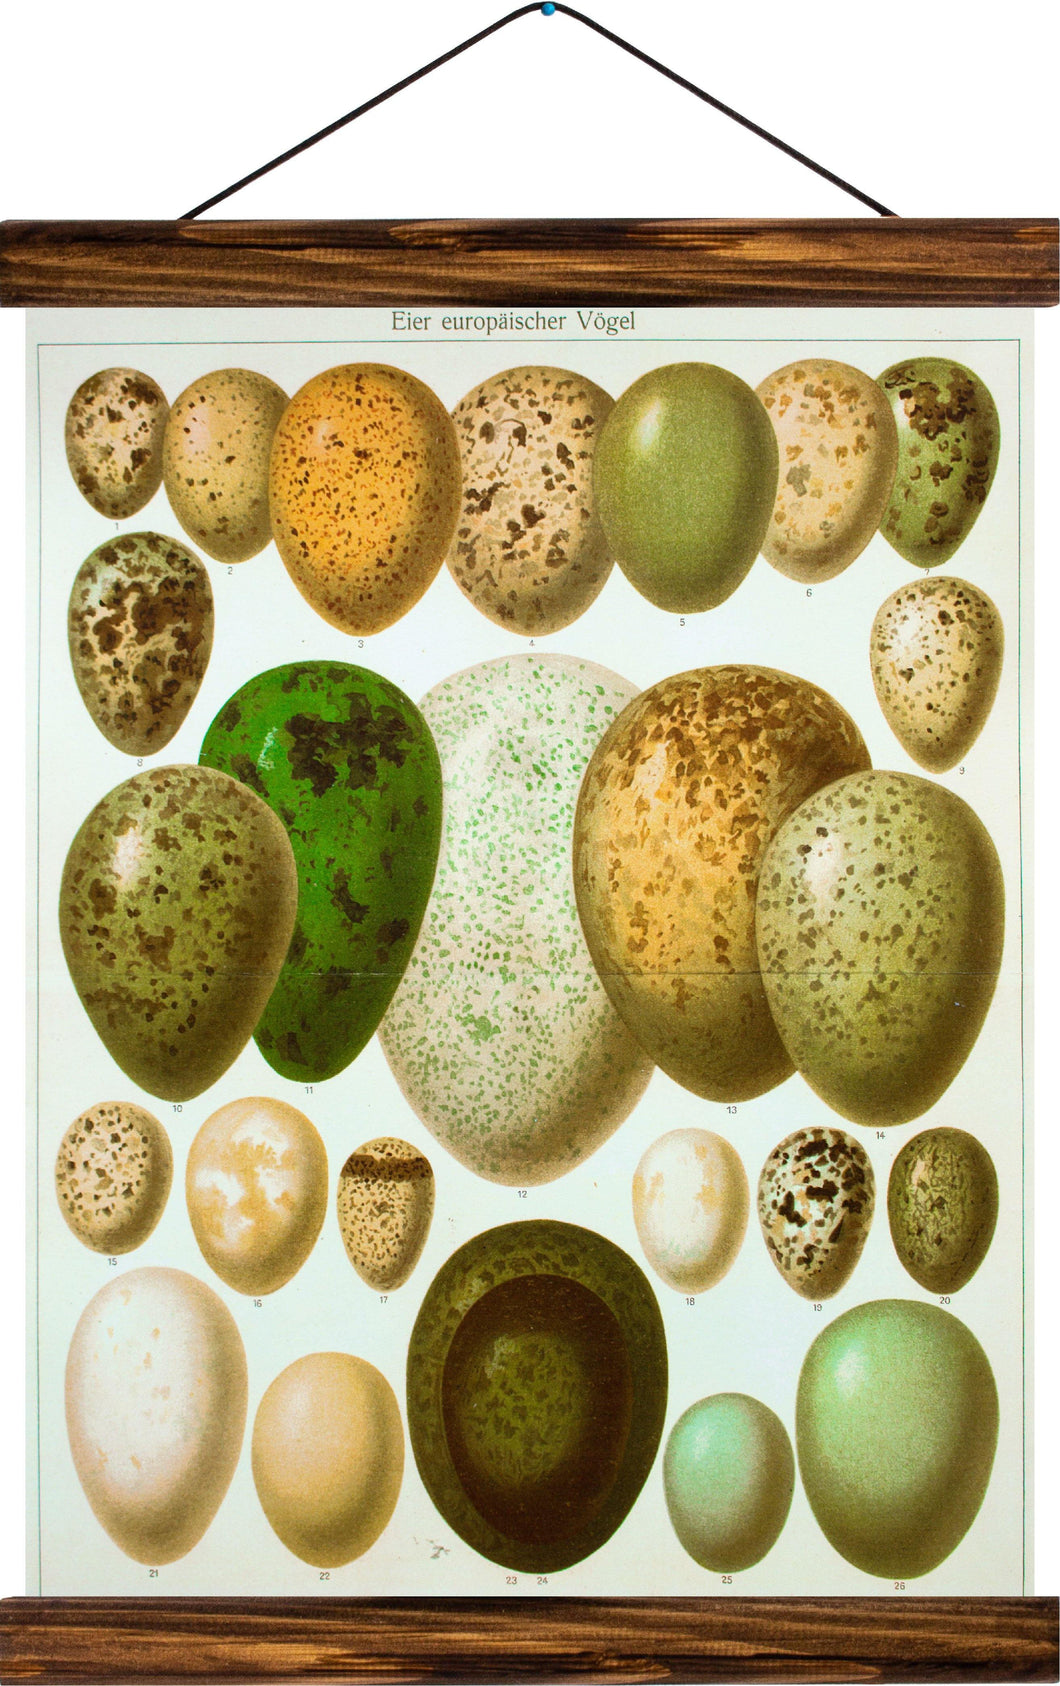 Eggs of european birds, reprint on linen